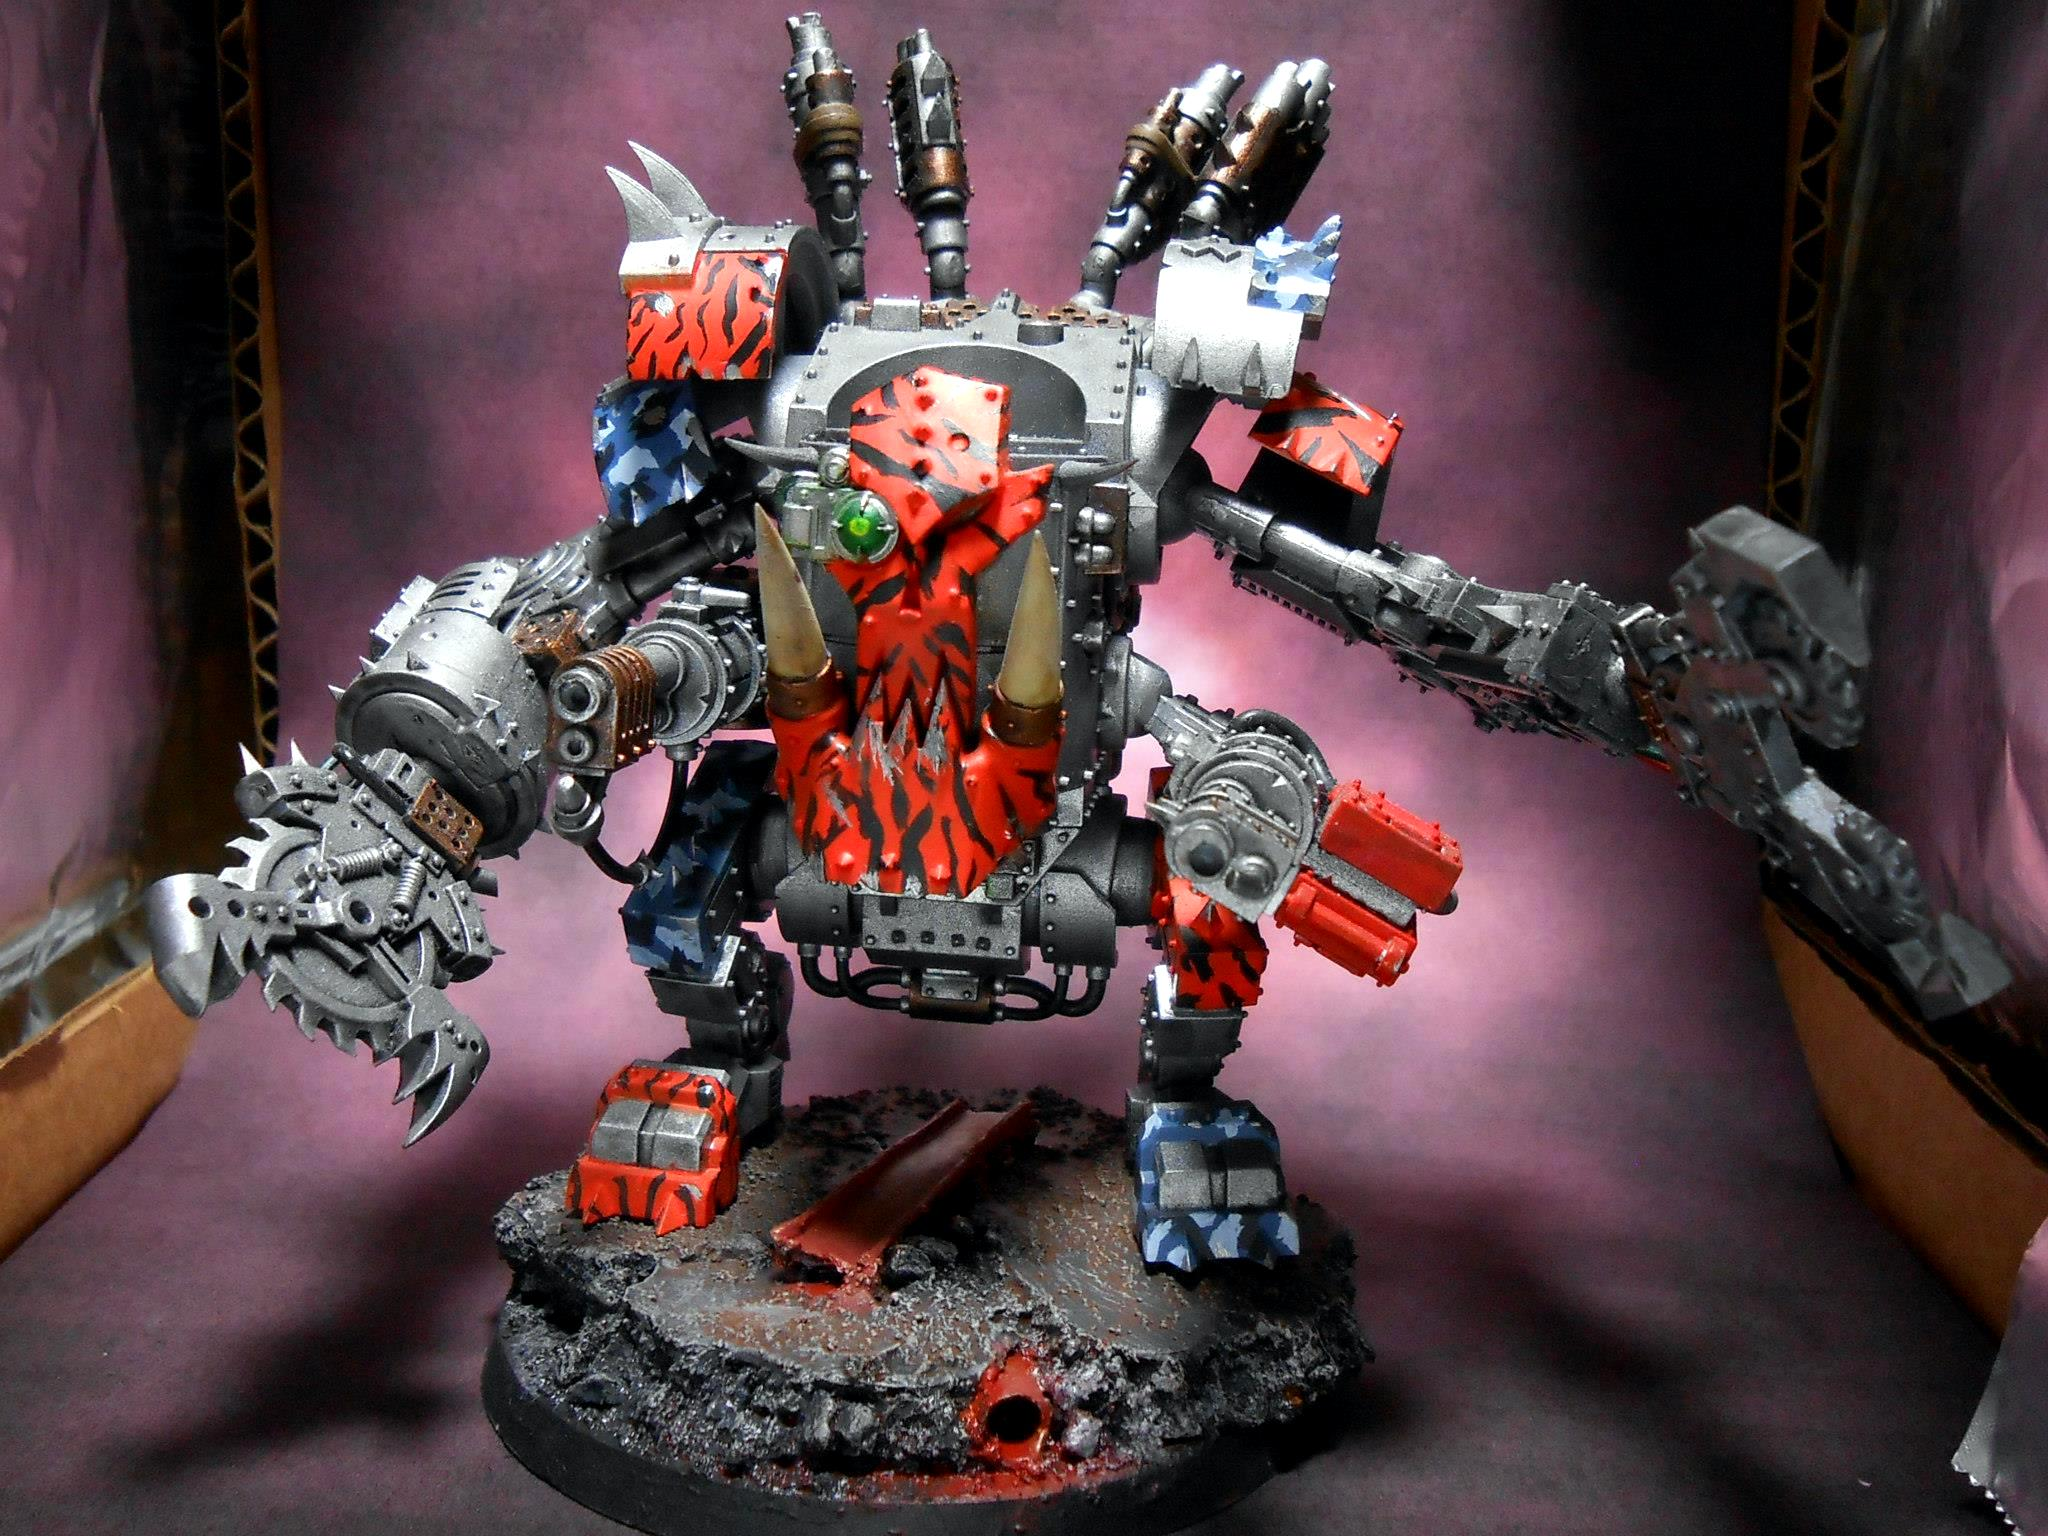 Blood Axe, Camouflage, Choppy, Death Dread, Deff Dread, Dreadnought, Orcs, Orks, Orky